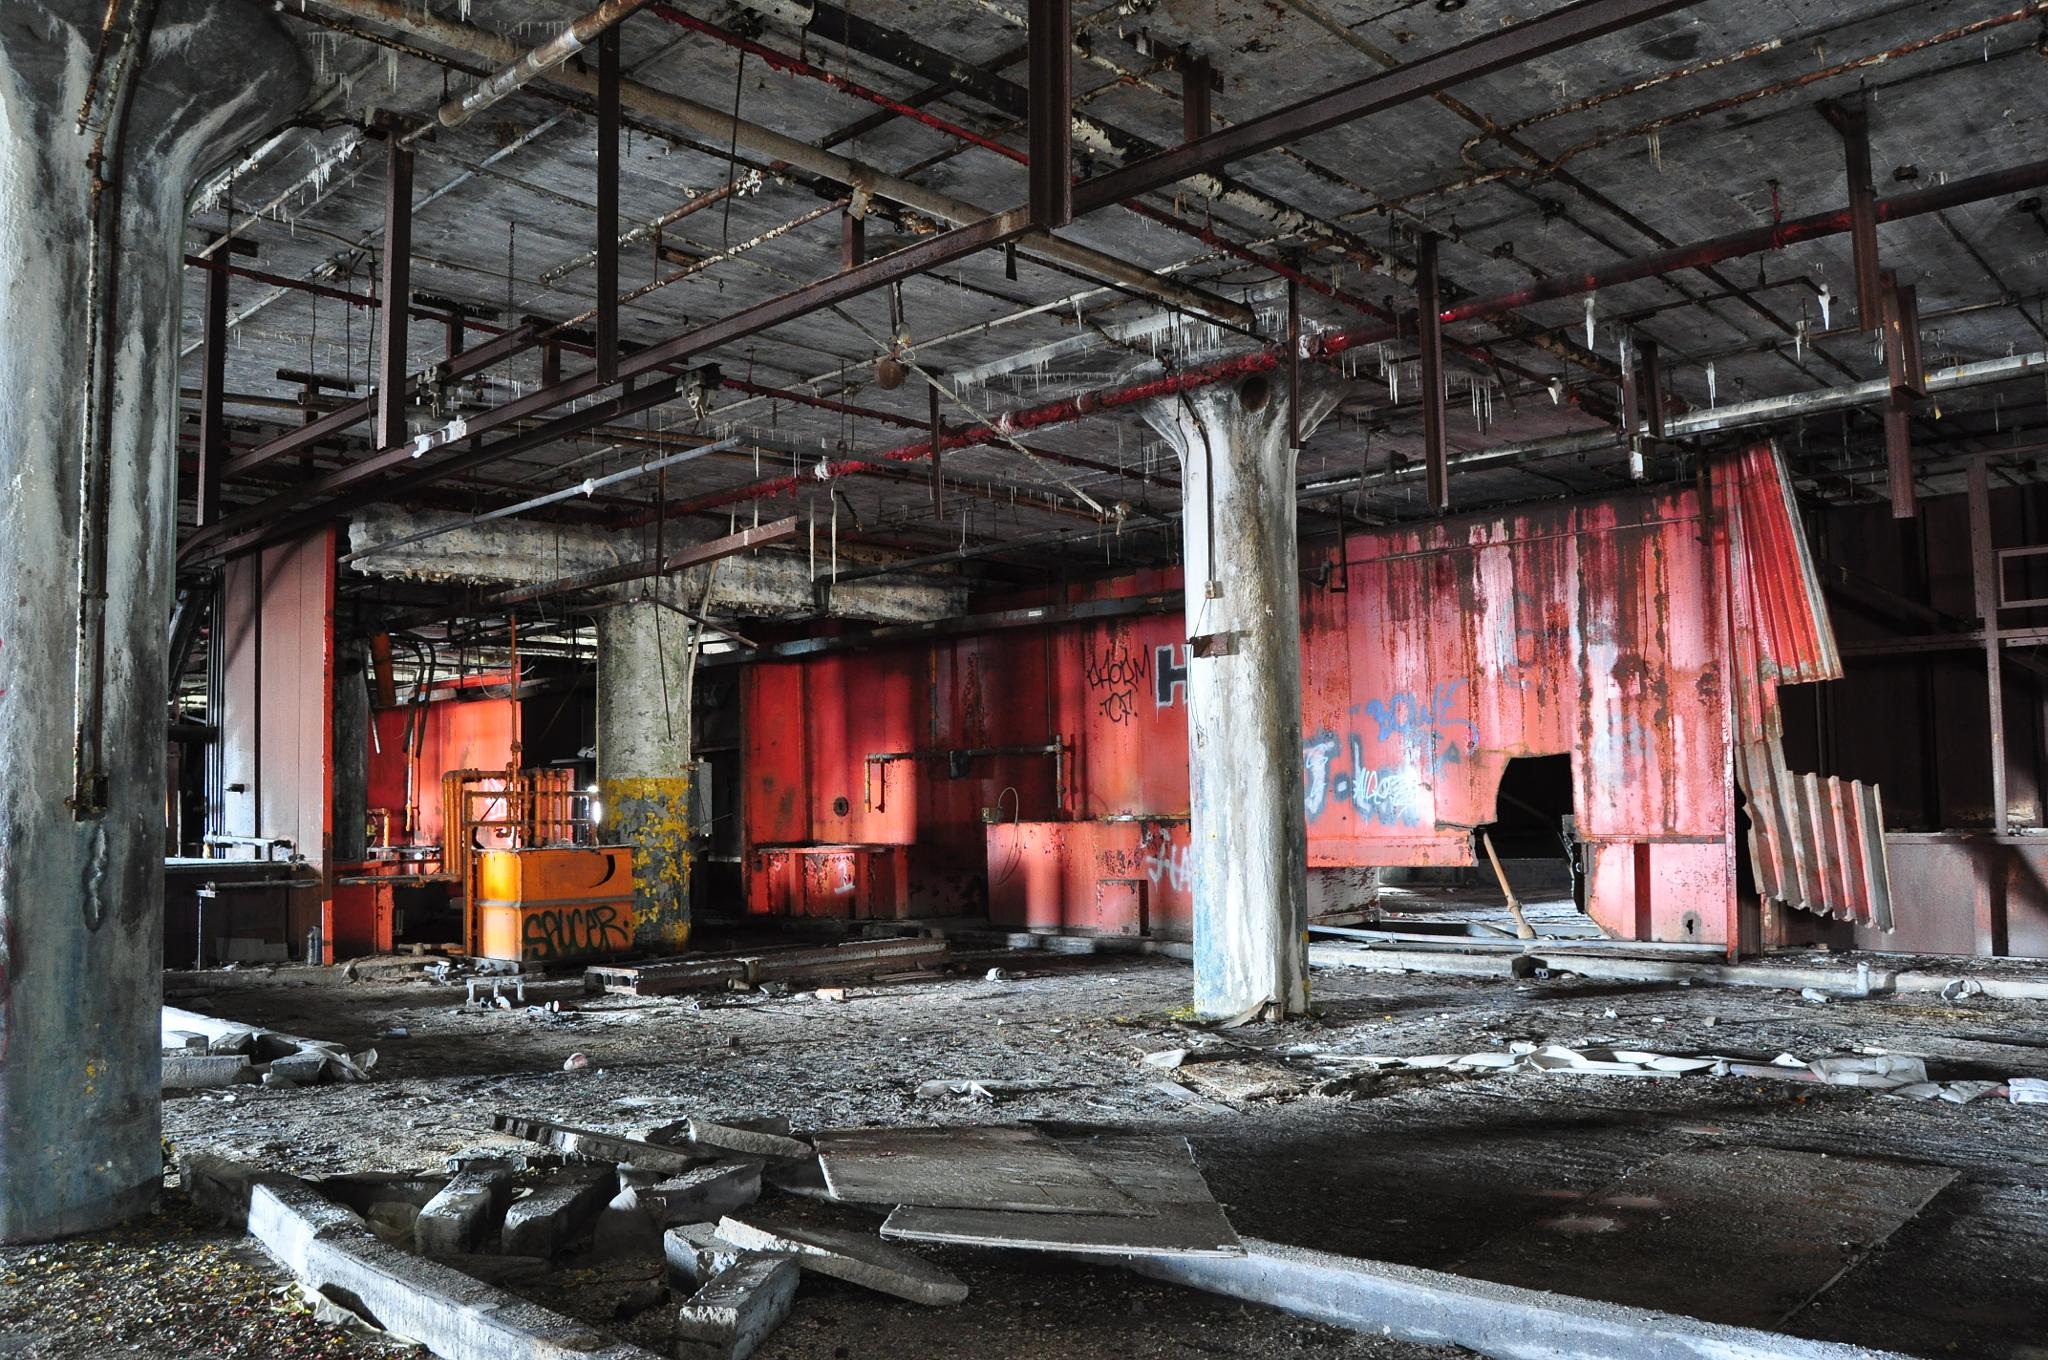 Abandoned auto factory by JanuaryFire